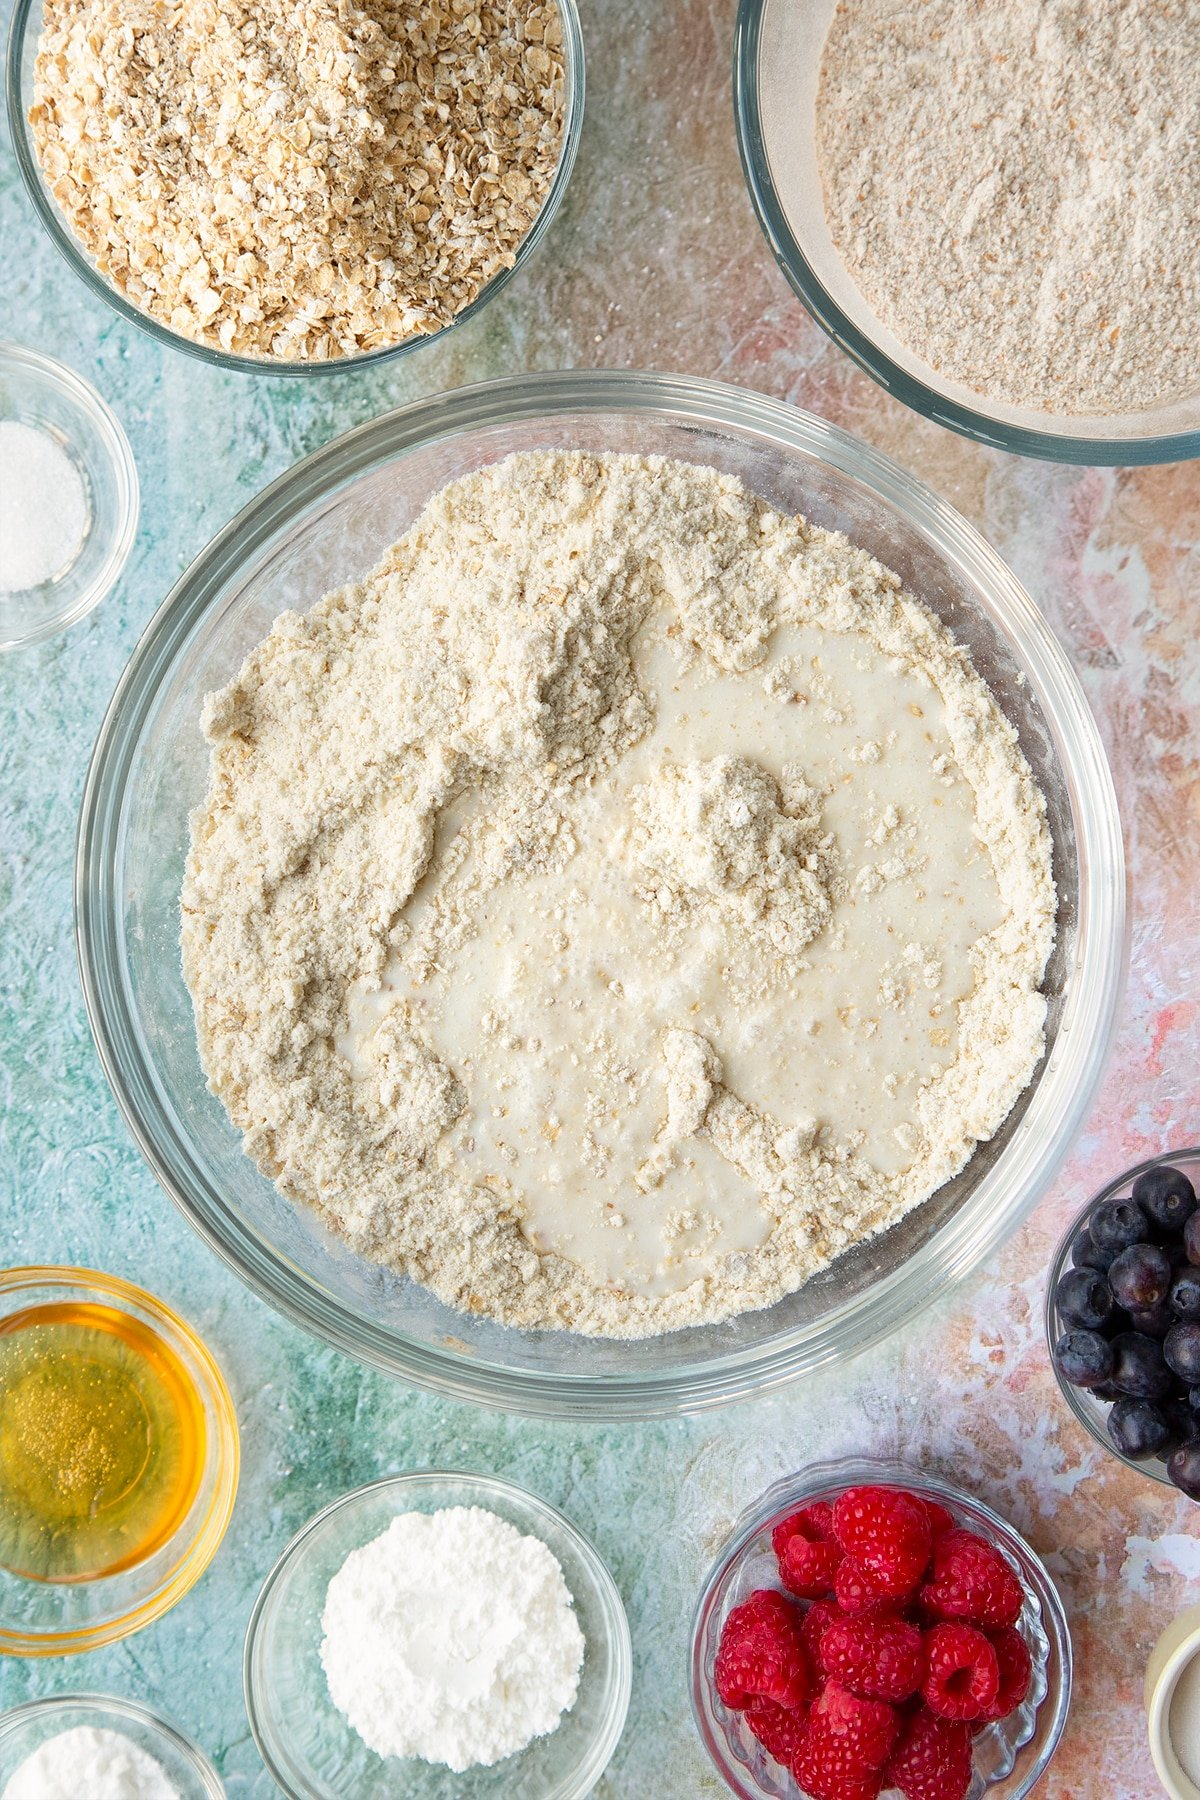 Butter rubbed into self-raising flour, bicarbonate of soda, sugar and oats in a glass mixing bowl with milk on top. Ingredients to make oatmeal scones surround the bowl.